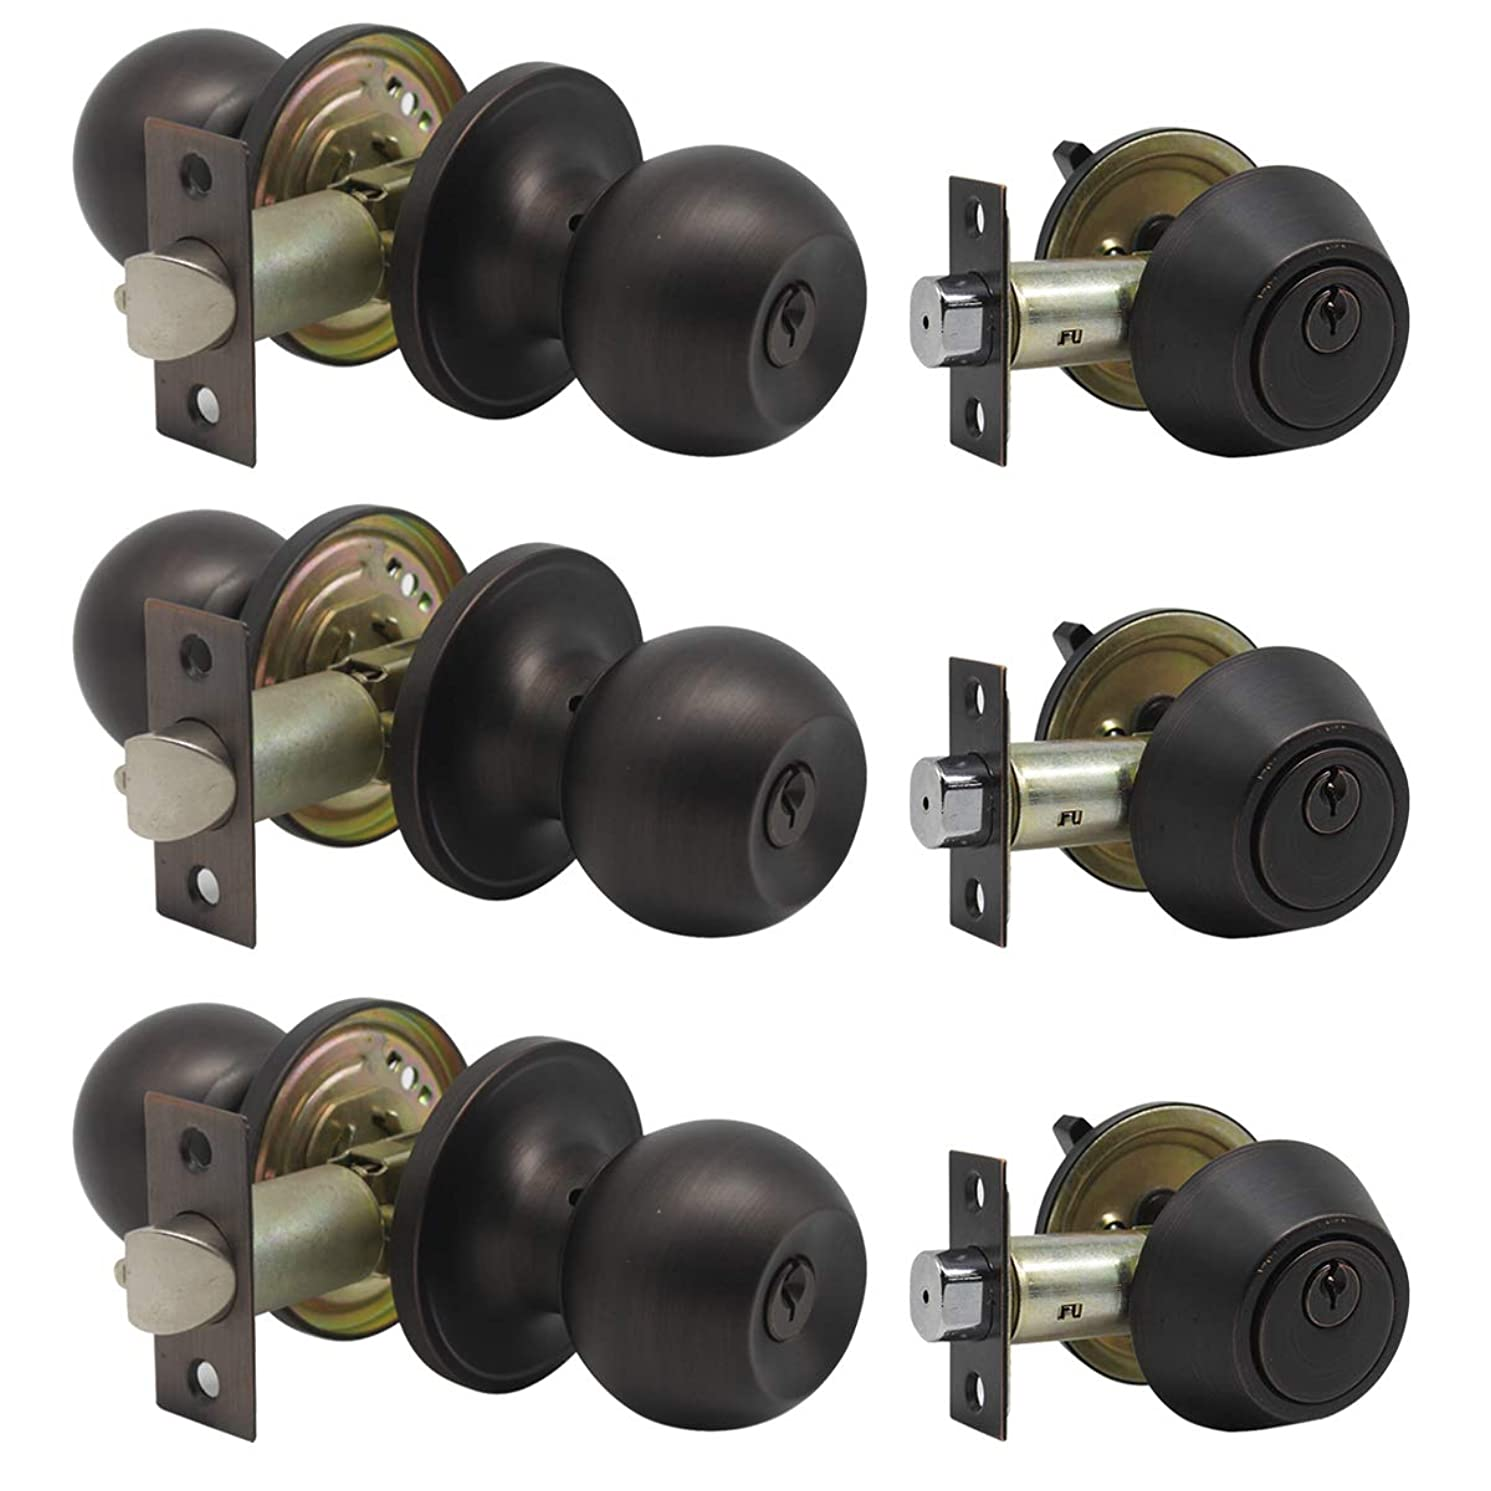 3 Pack Keyed Alike Entry Door Knobs/Keyed Door Lock, Double Cylinder Keyed Deadbolt with Matching Round Style Knob, Classic Oil Rubbed Bronze Finish, Door Hardware & Lock